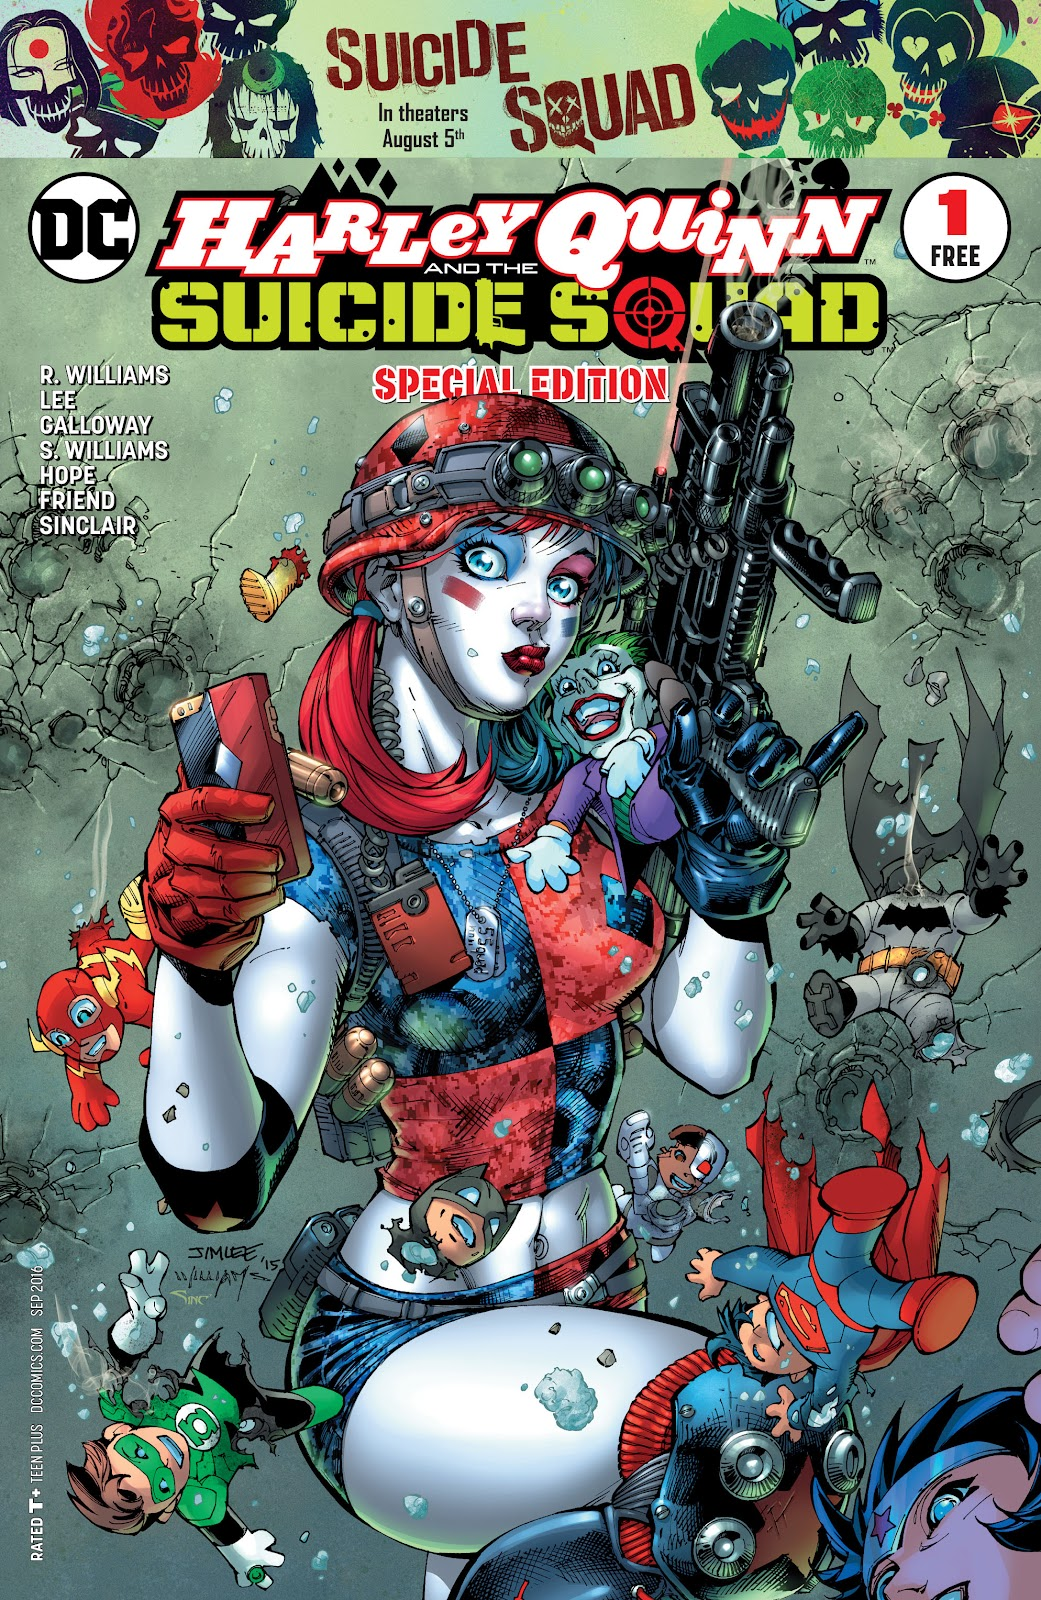 Read online Harley Quinn & the Suicide Squad Special Edition comic -  Issue # Full - 1